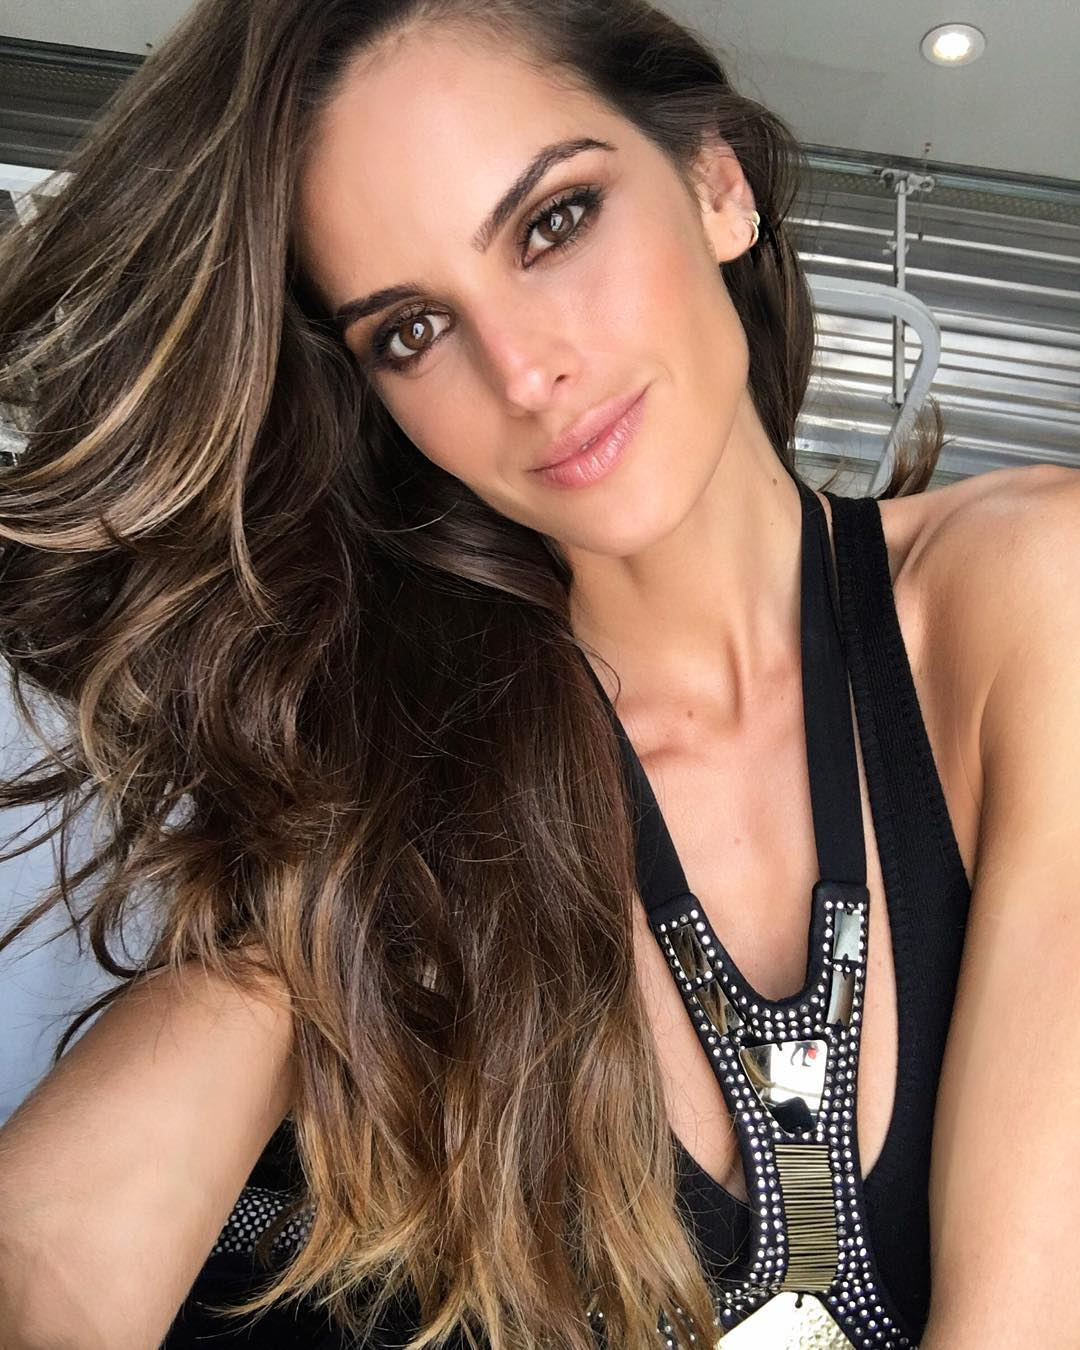 izabel goulart sportizabel goulart diet, izabel goulart vk, izabel goulart workout, izabel goulart инстаграм, izabel goulart bikini, izabel goulart dress, izabel goulart 2017, izabel goulart insta, izabel goulart and kevin trapp, izabel goulart sport, izabel goulart beach, izabel goulart listal, izabel goulart bellazon, izabel goulart photo, izabel goulart zimbio, izabel goulart trapp, izabel goulart training, izabel goulart forum, izabel goulart food, izabel goulart 2004